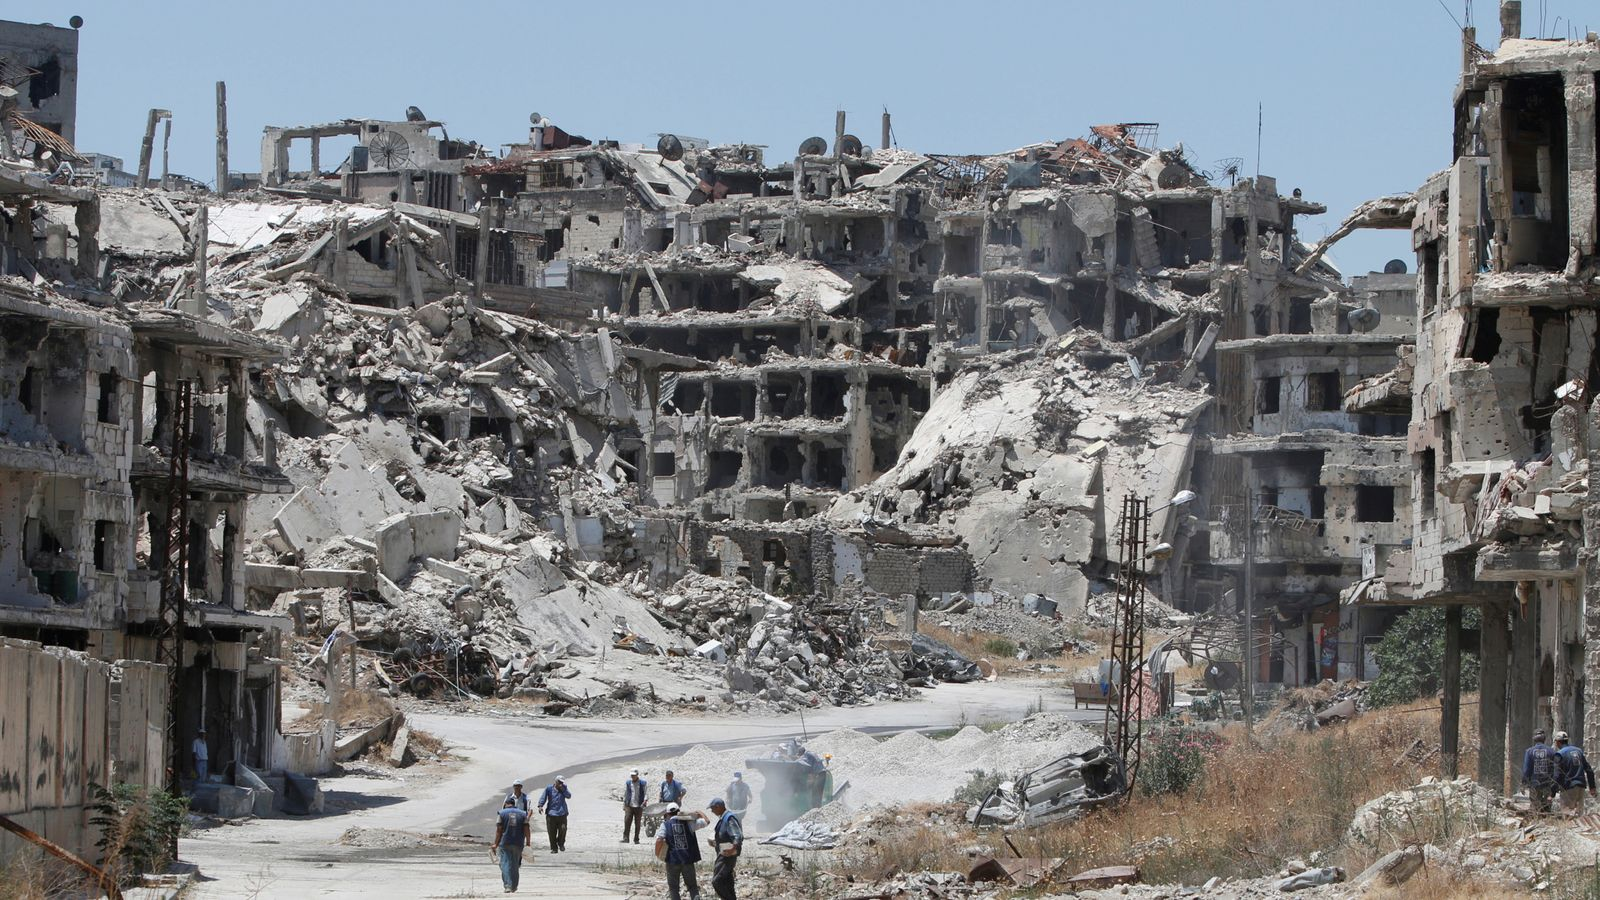 Ruined buildings in war-ravaged Homs